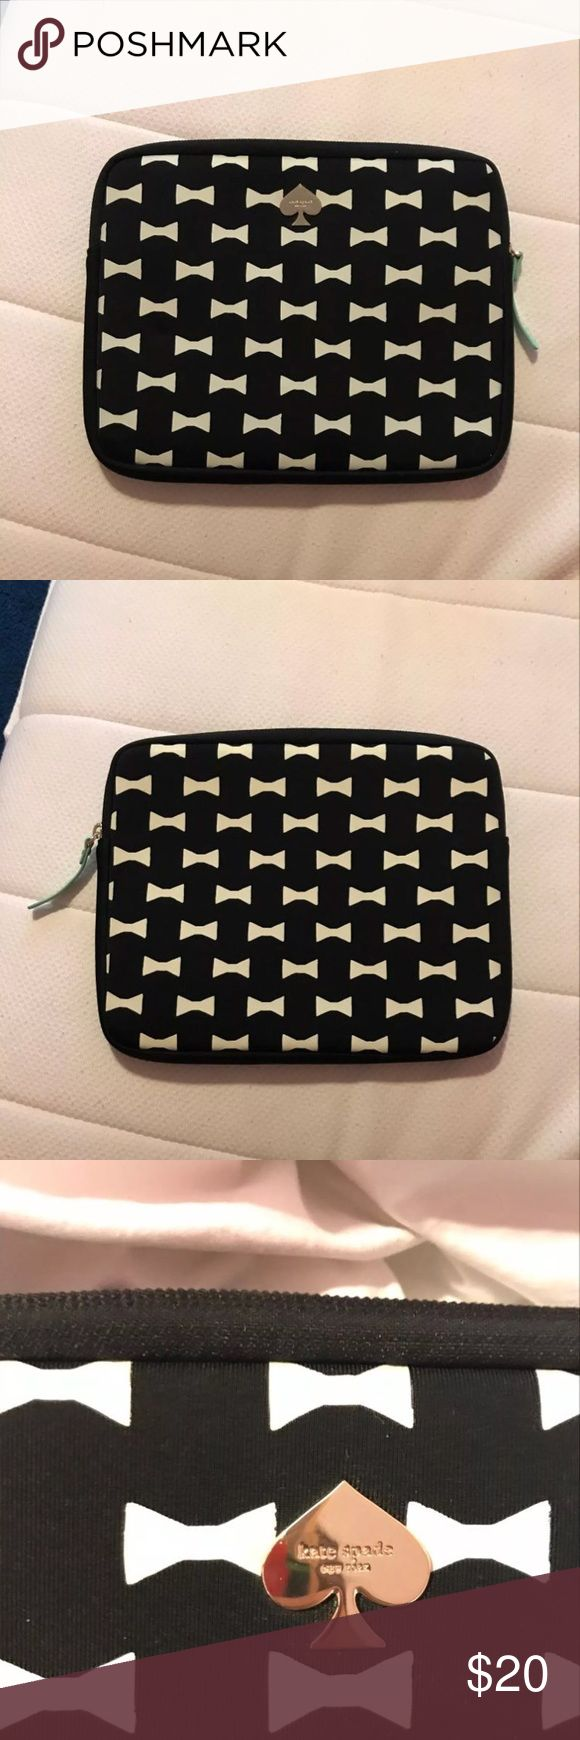 Bow tie Kate spade iPad case Kate spade iPad case. Used a twice and is in very good condition. kate spade Other